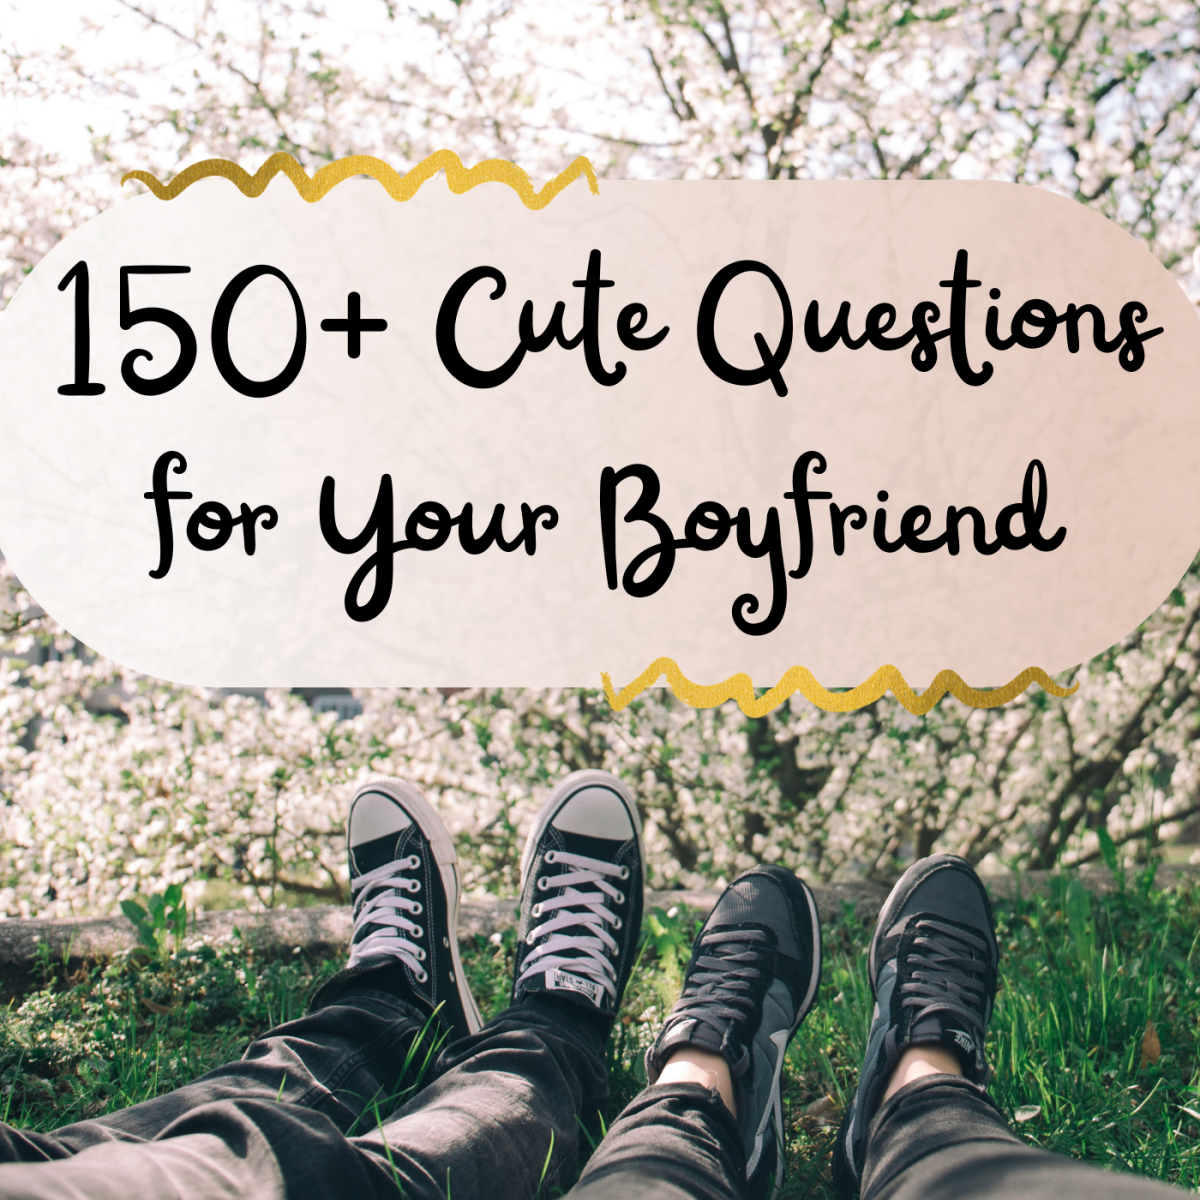 Want to spark a deep conversation with your guy or just enjoy some cute Q&A? These questions can help the two of you grow closer!